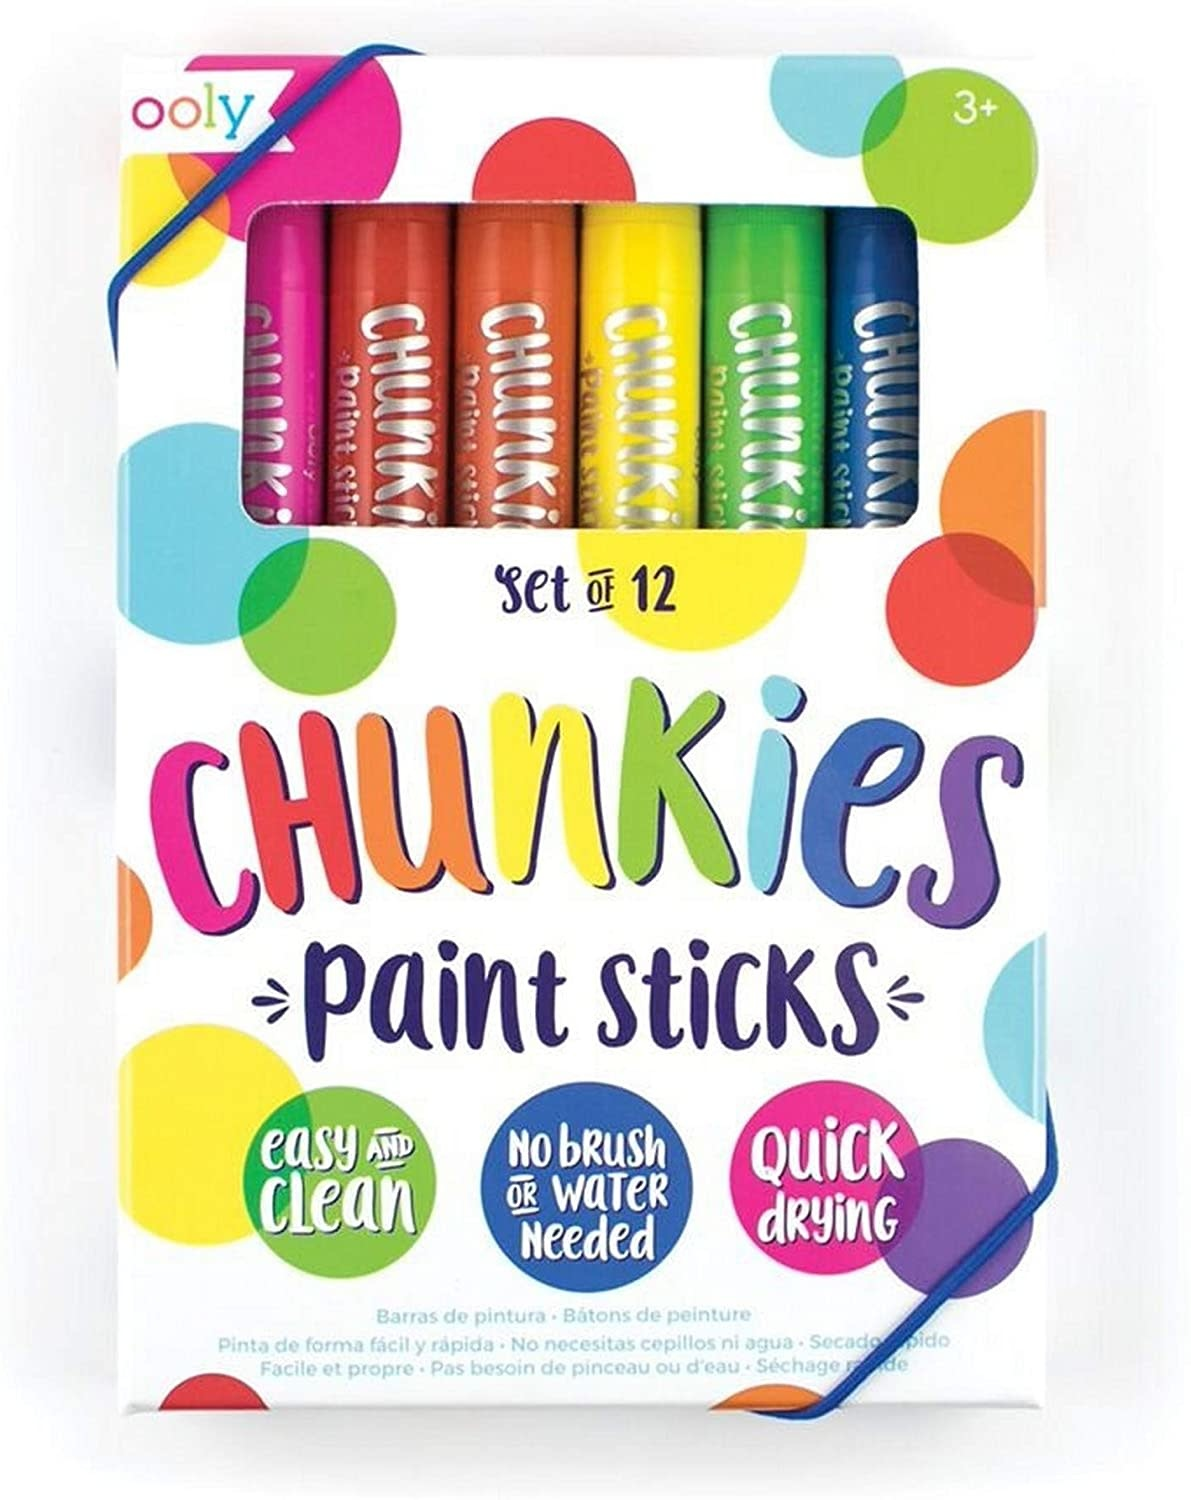 Chunkies Paint Sticks by Ooly